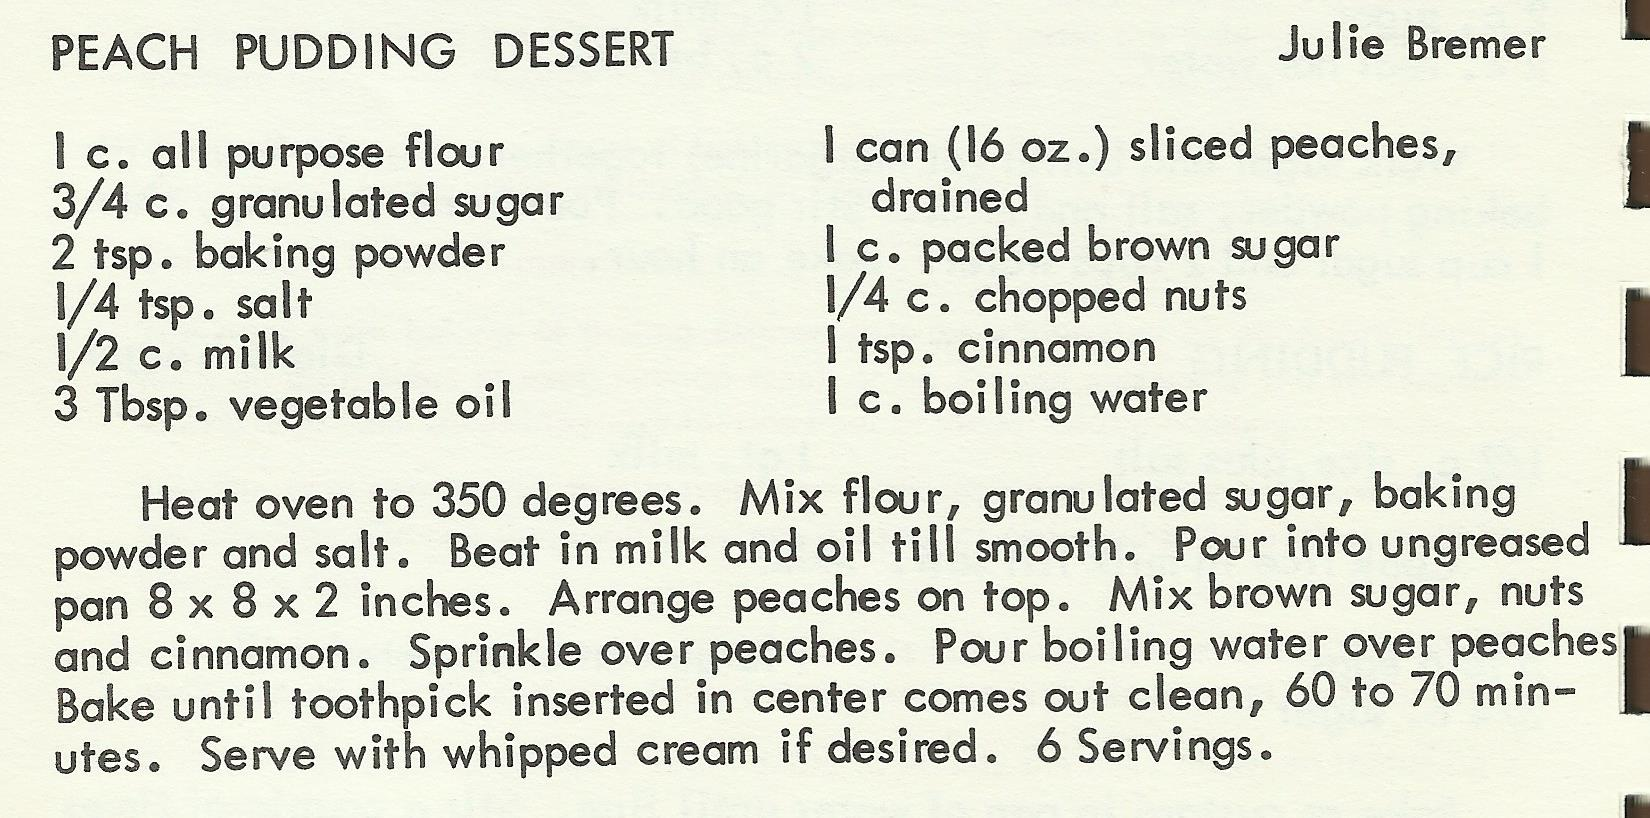 Peach Pudding Dessert